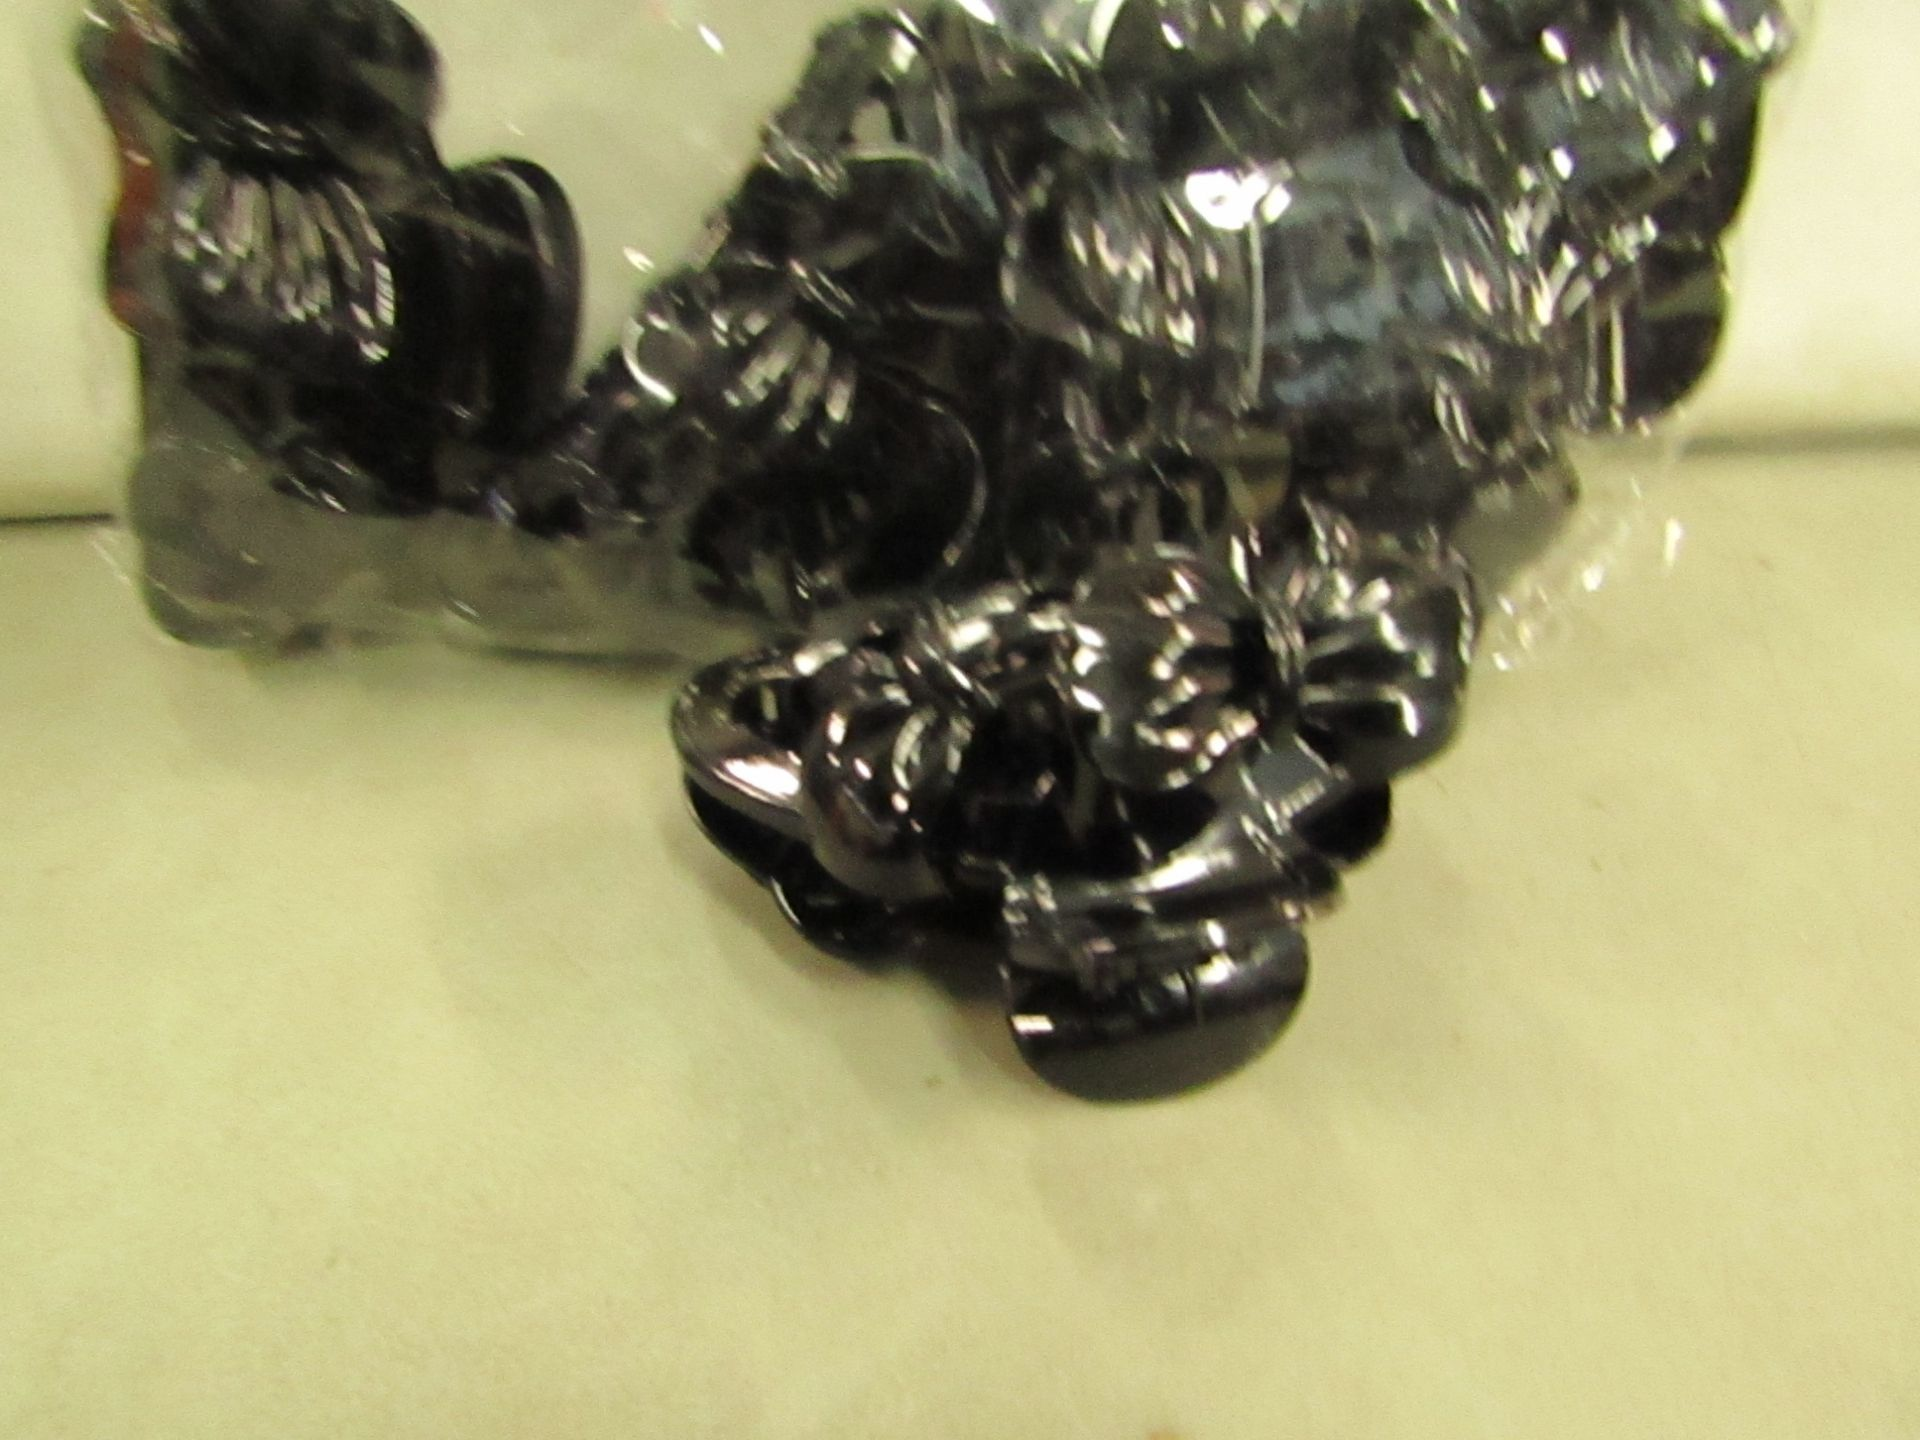 Lot 295 - 12 x Black X Large Hair Claws RRP £1.50 each @ Claire's Accessories new & packaged